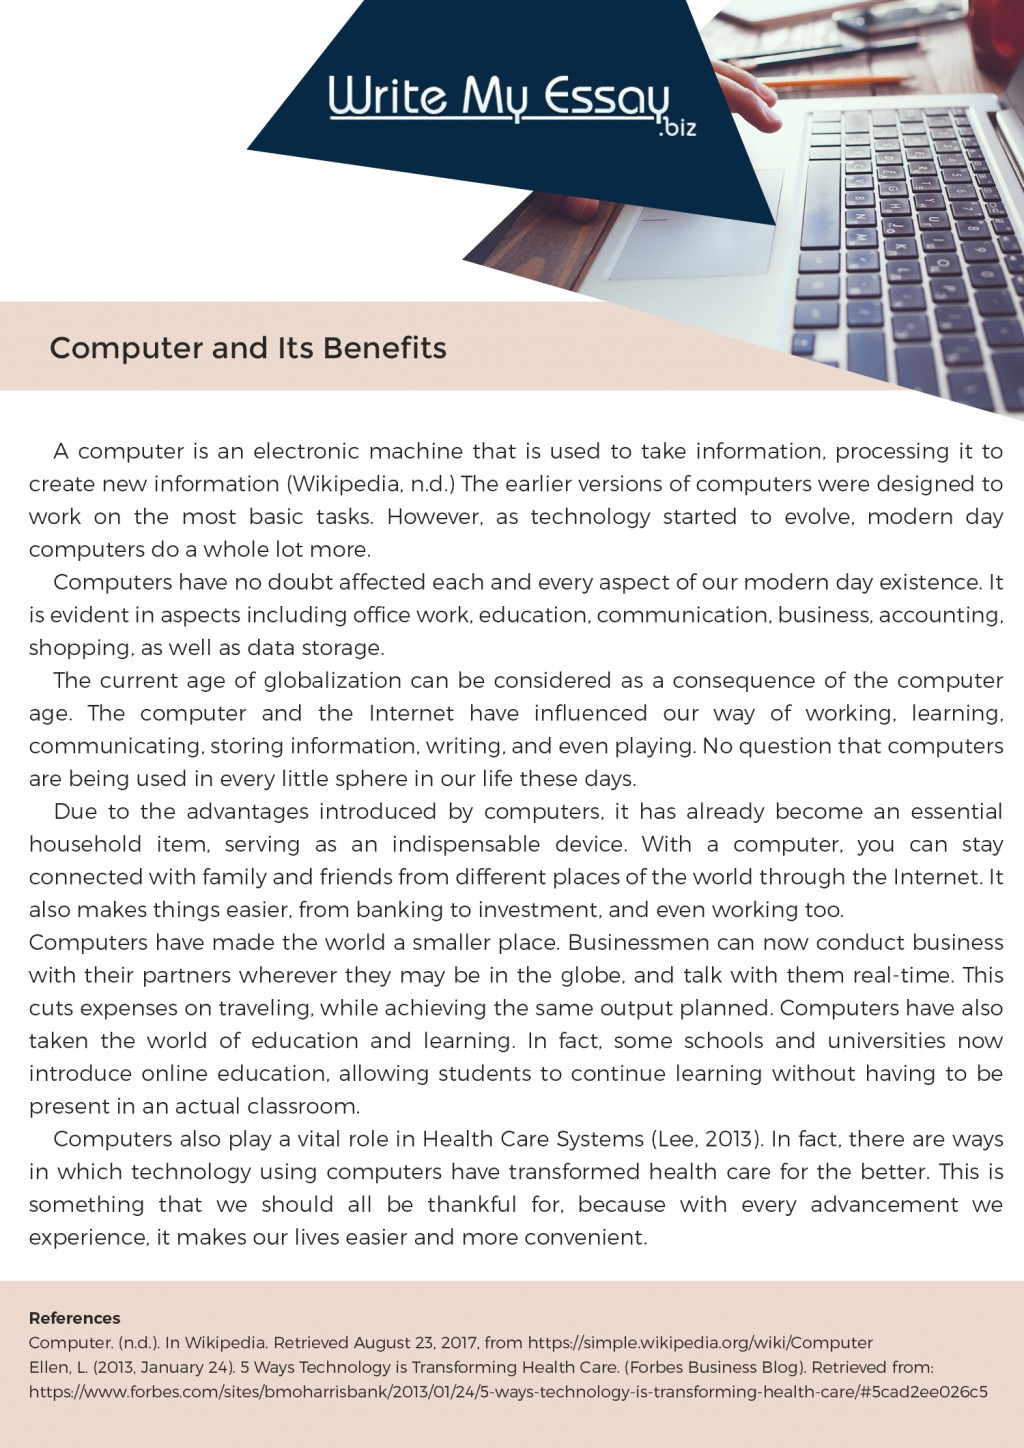 005 Essay Example On Computer And Its Benefits Fearsome Science In Hindi Urdu Large